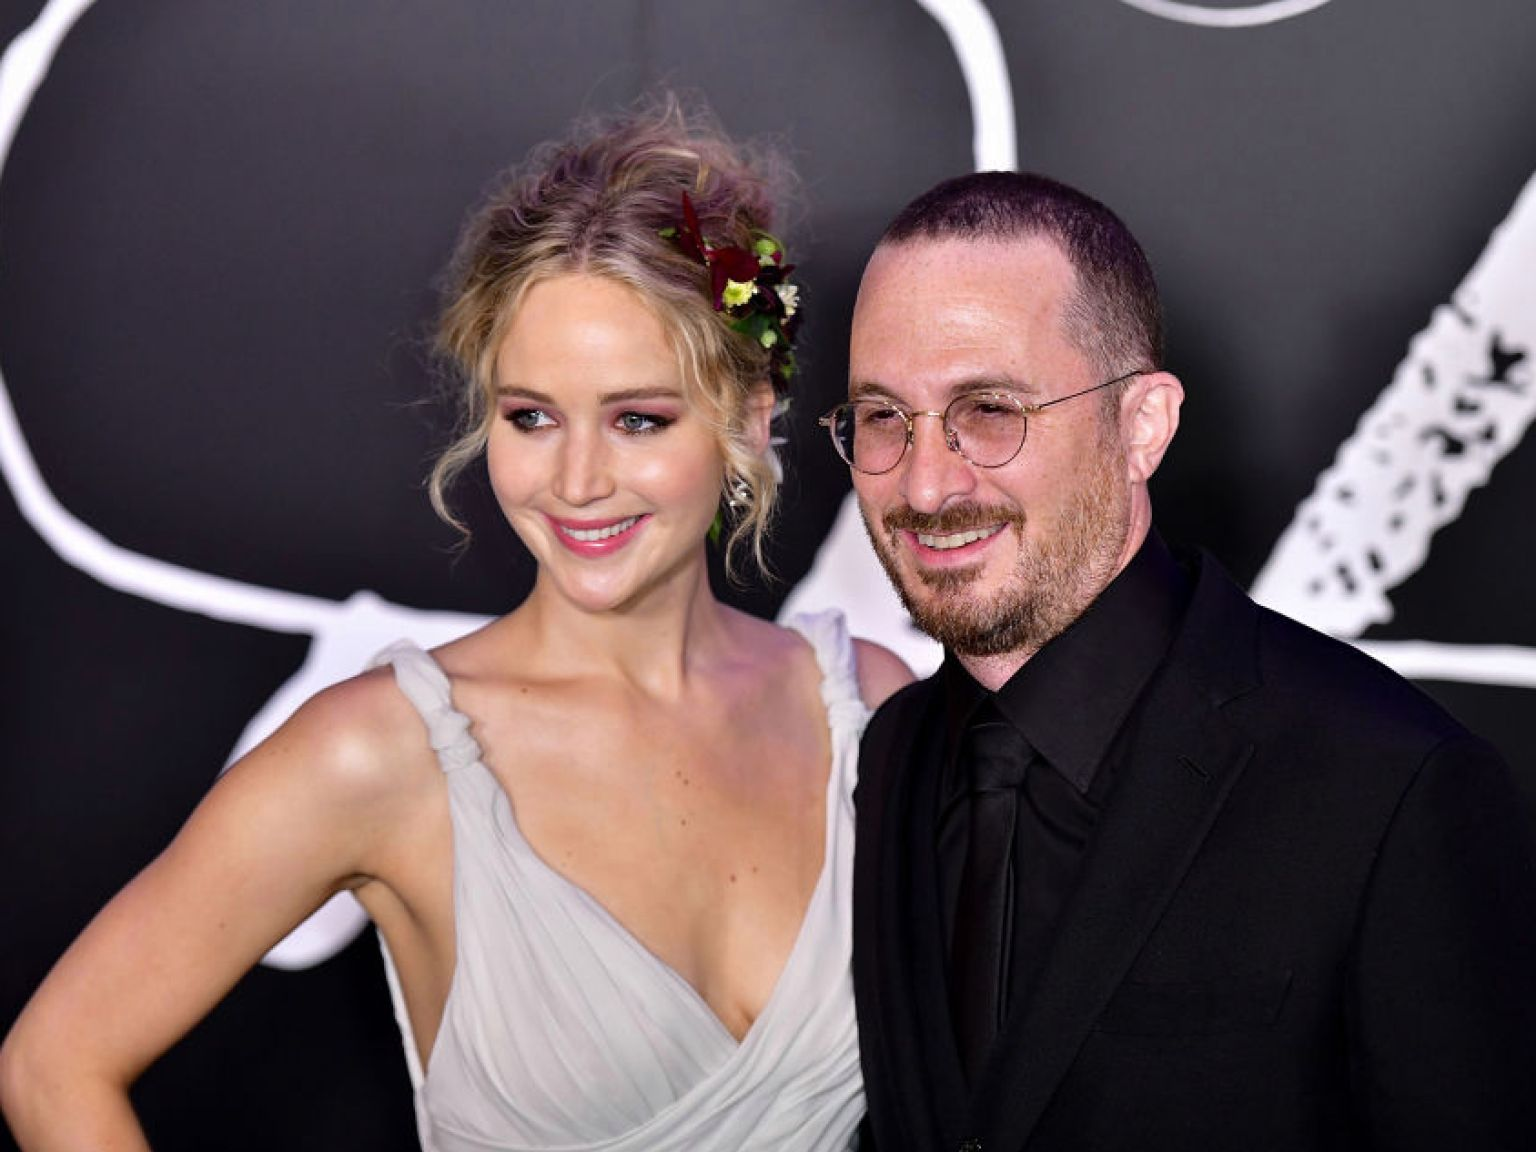 The Complete Darren Aronofsky Collection